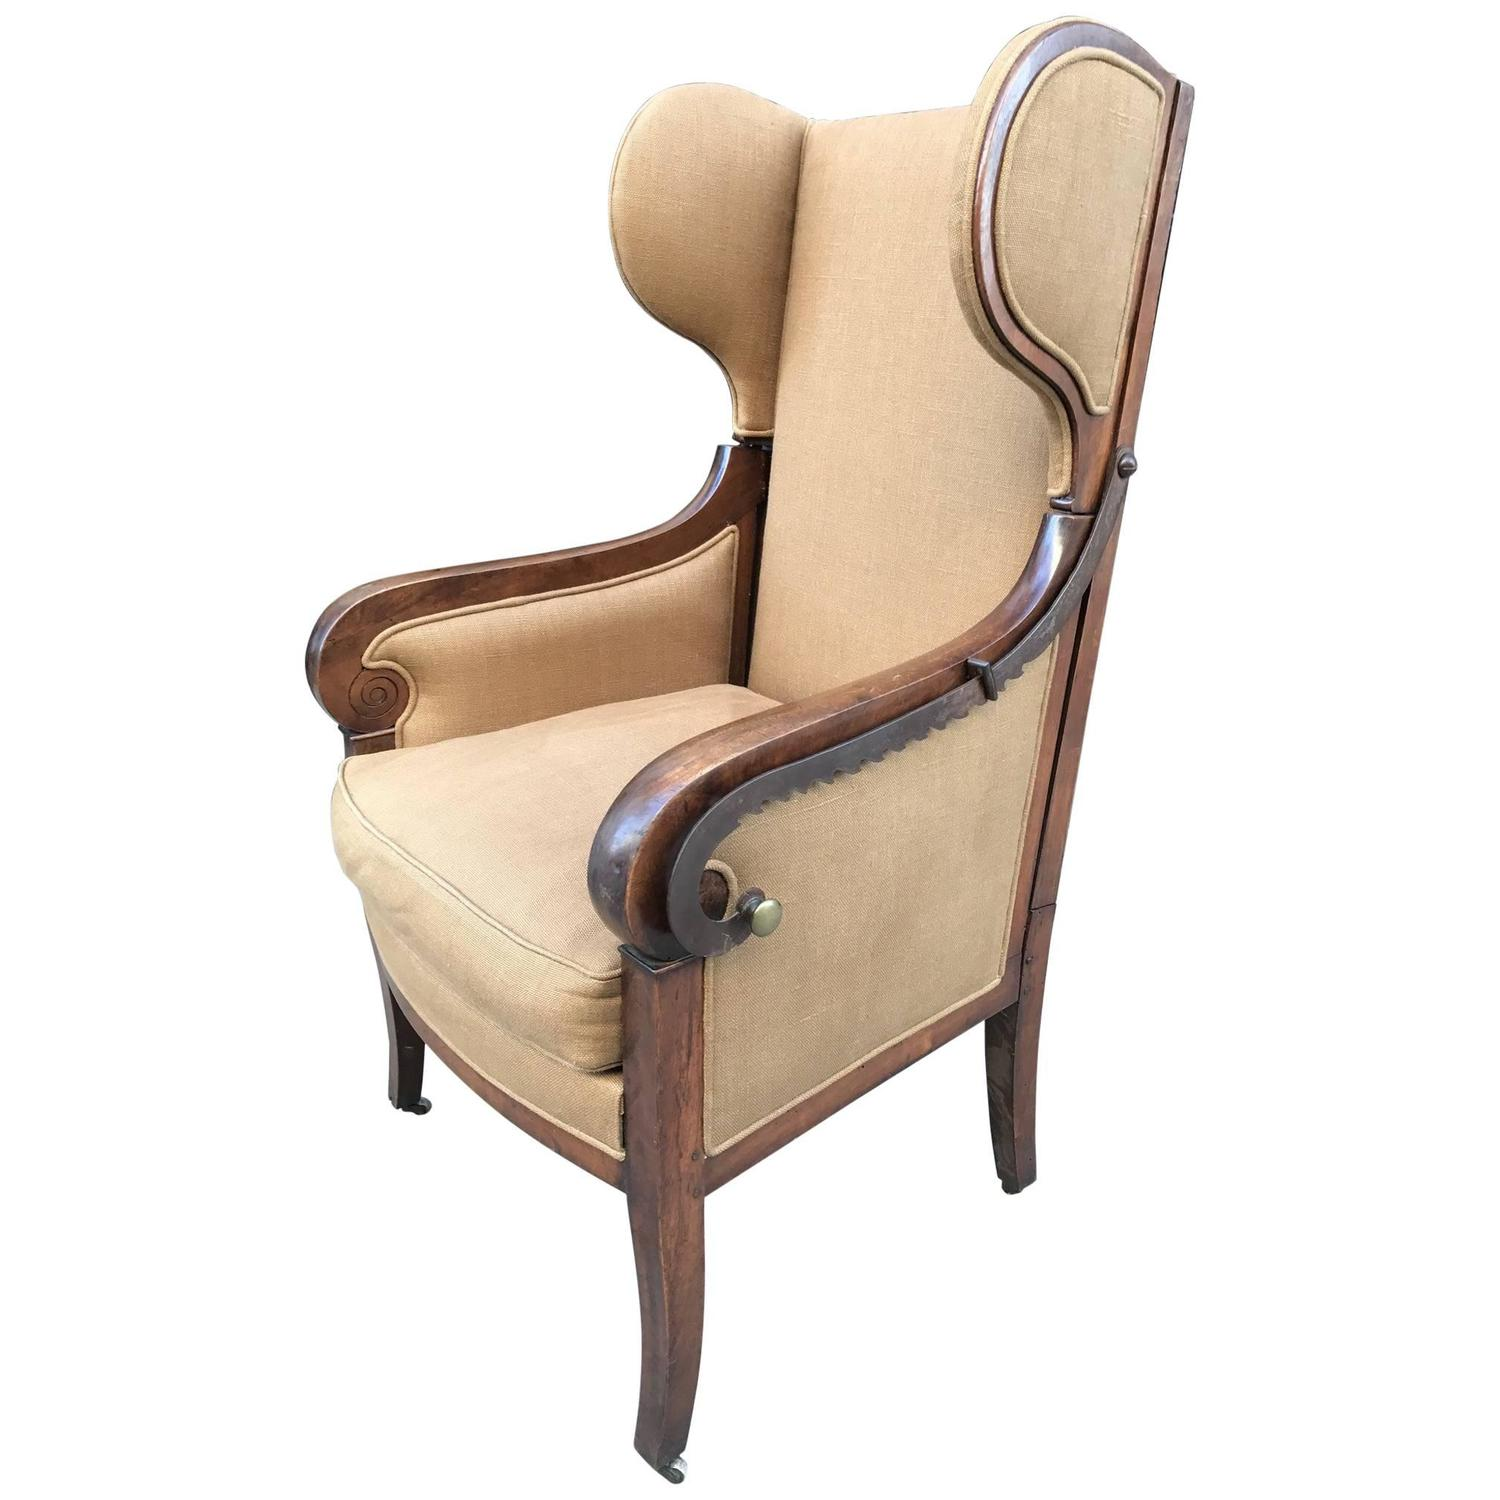 Antique Wicker Bar Harbor Wingback Chairs For Sale at 1stdibs